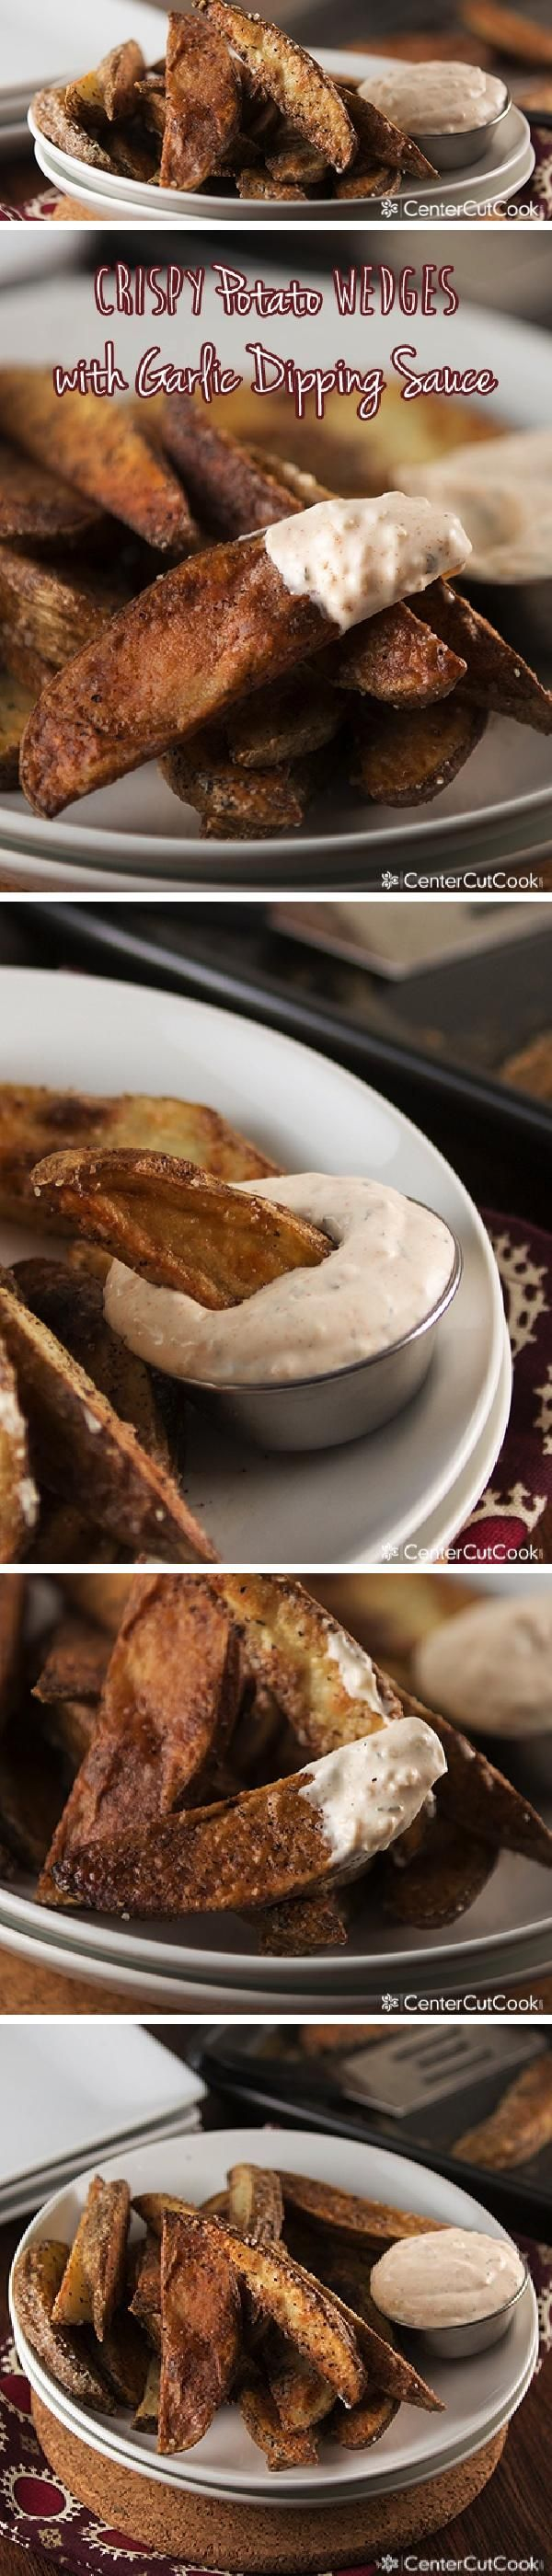 "CRISPY Baked POTATO WEDGES are perfectly seasoned then ""fried"" in the oven and served with GARLIC DIPPING SAUCE on the side. Lighter in calories than traditional fried potato wedges and deeeeelicious!"